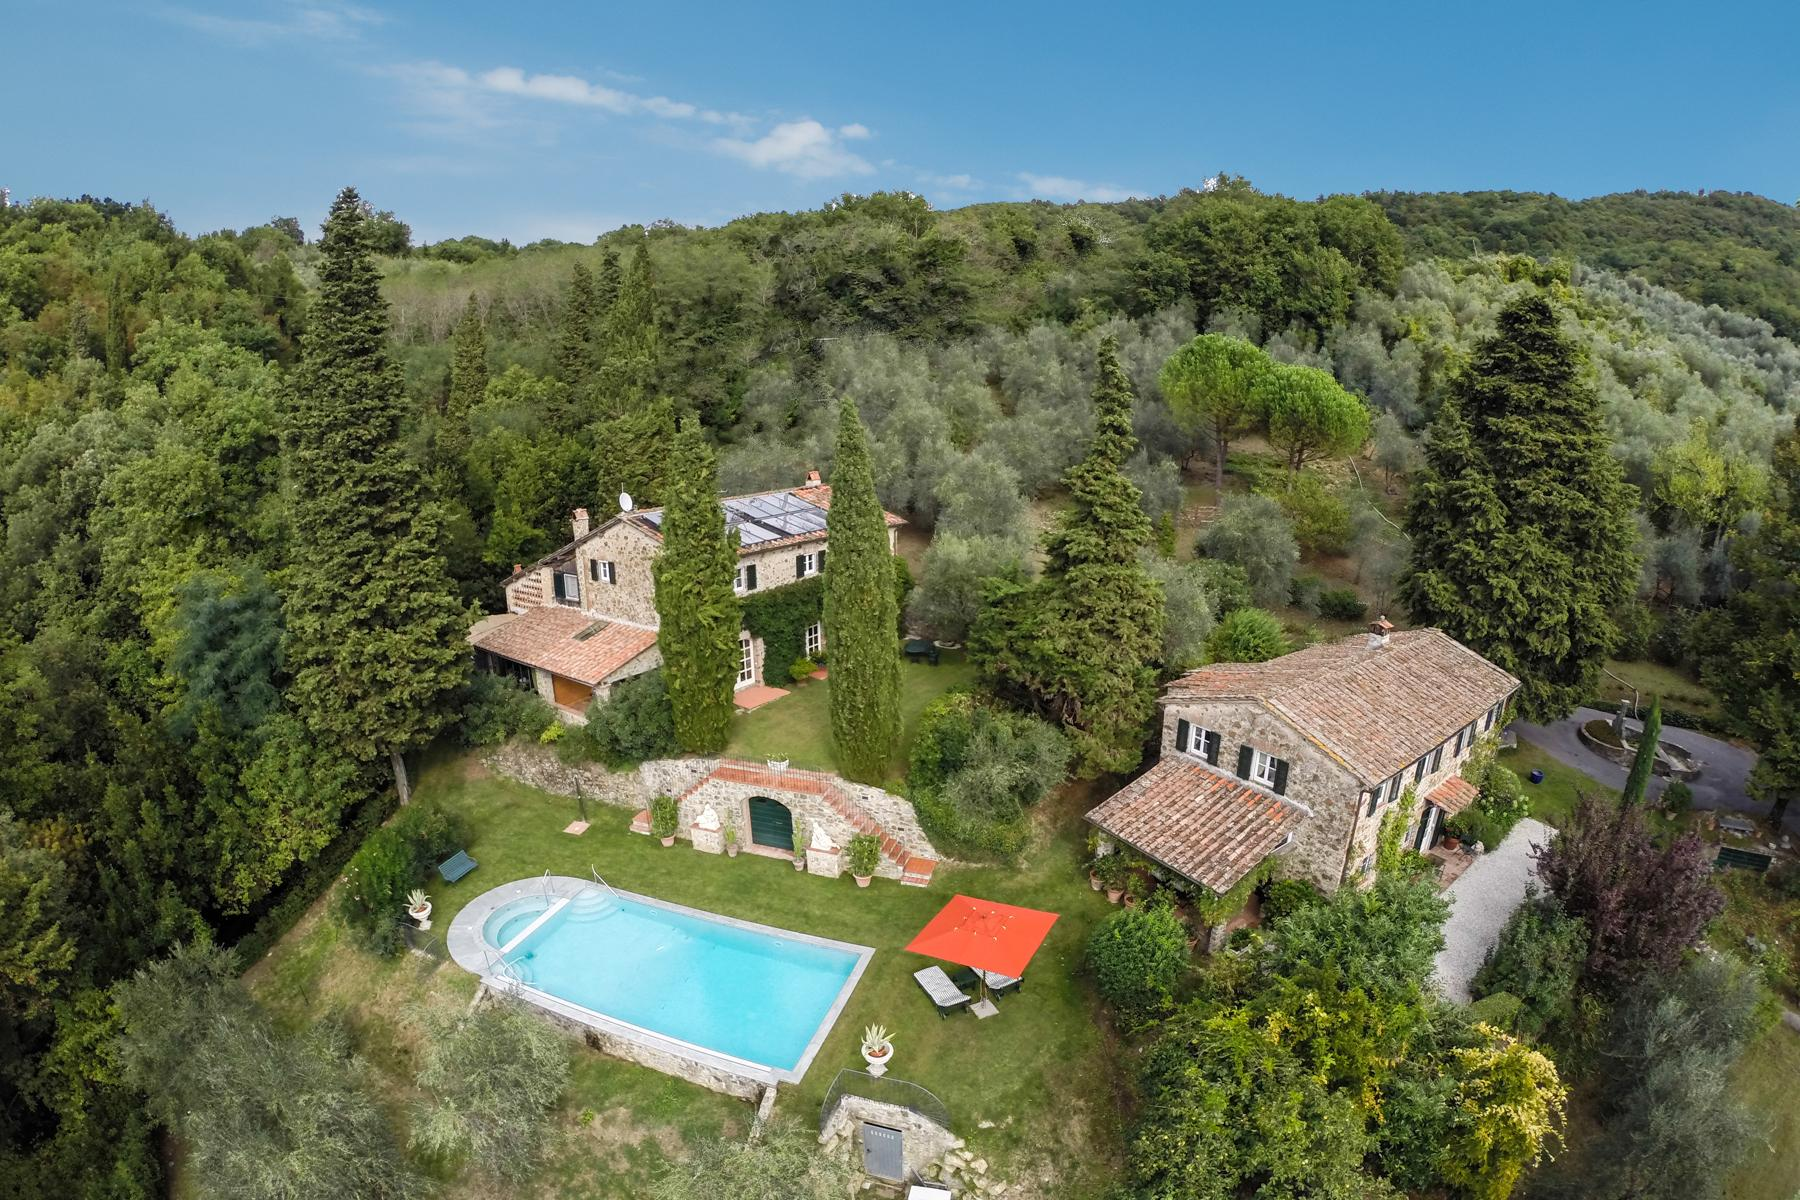 Marvelous villa in the countryside of Lucca - 41